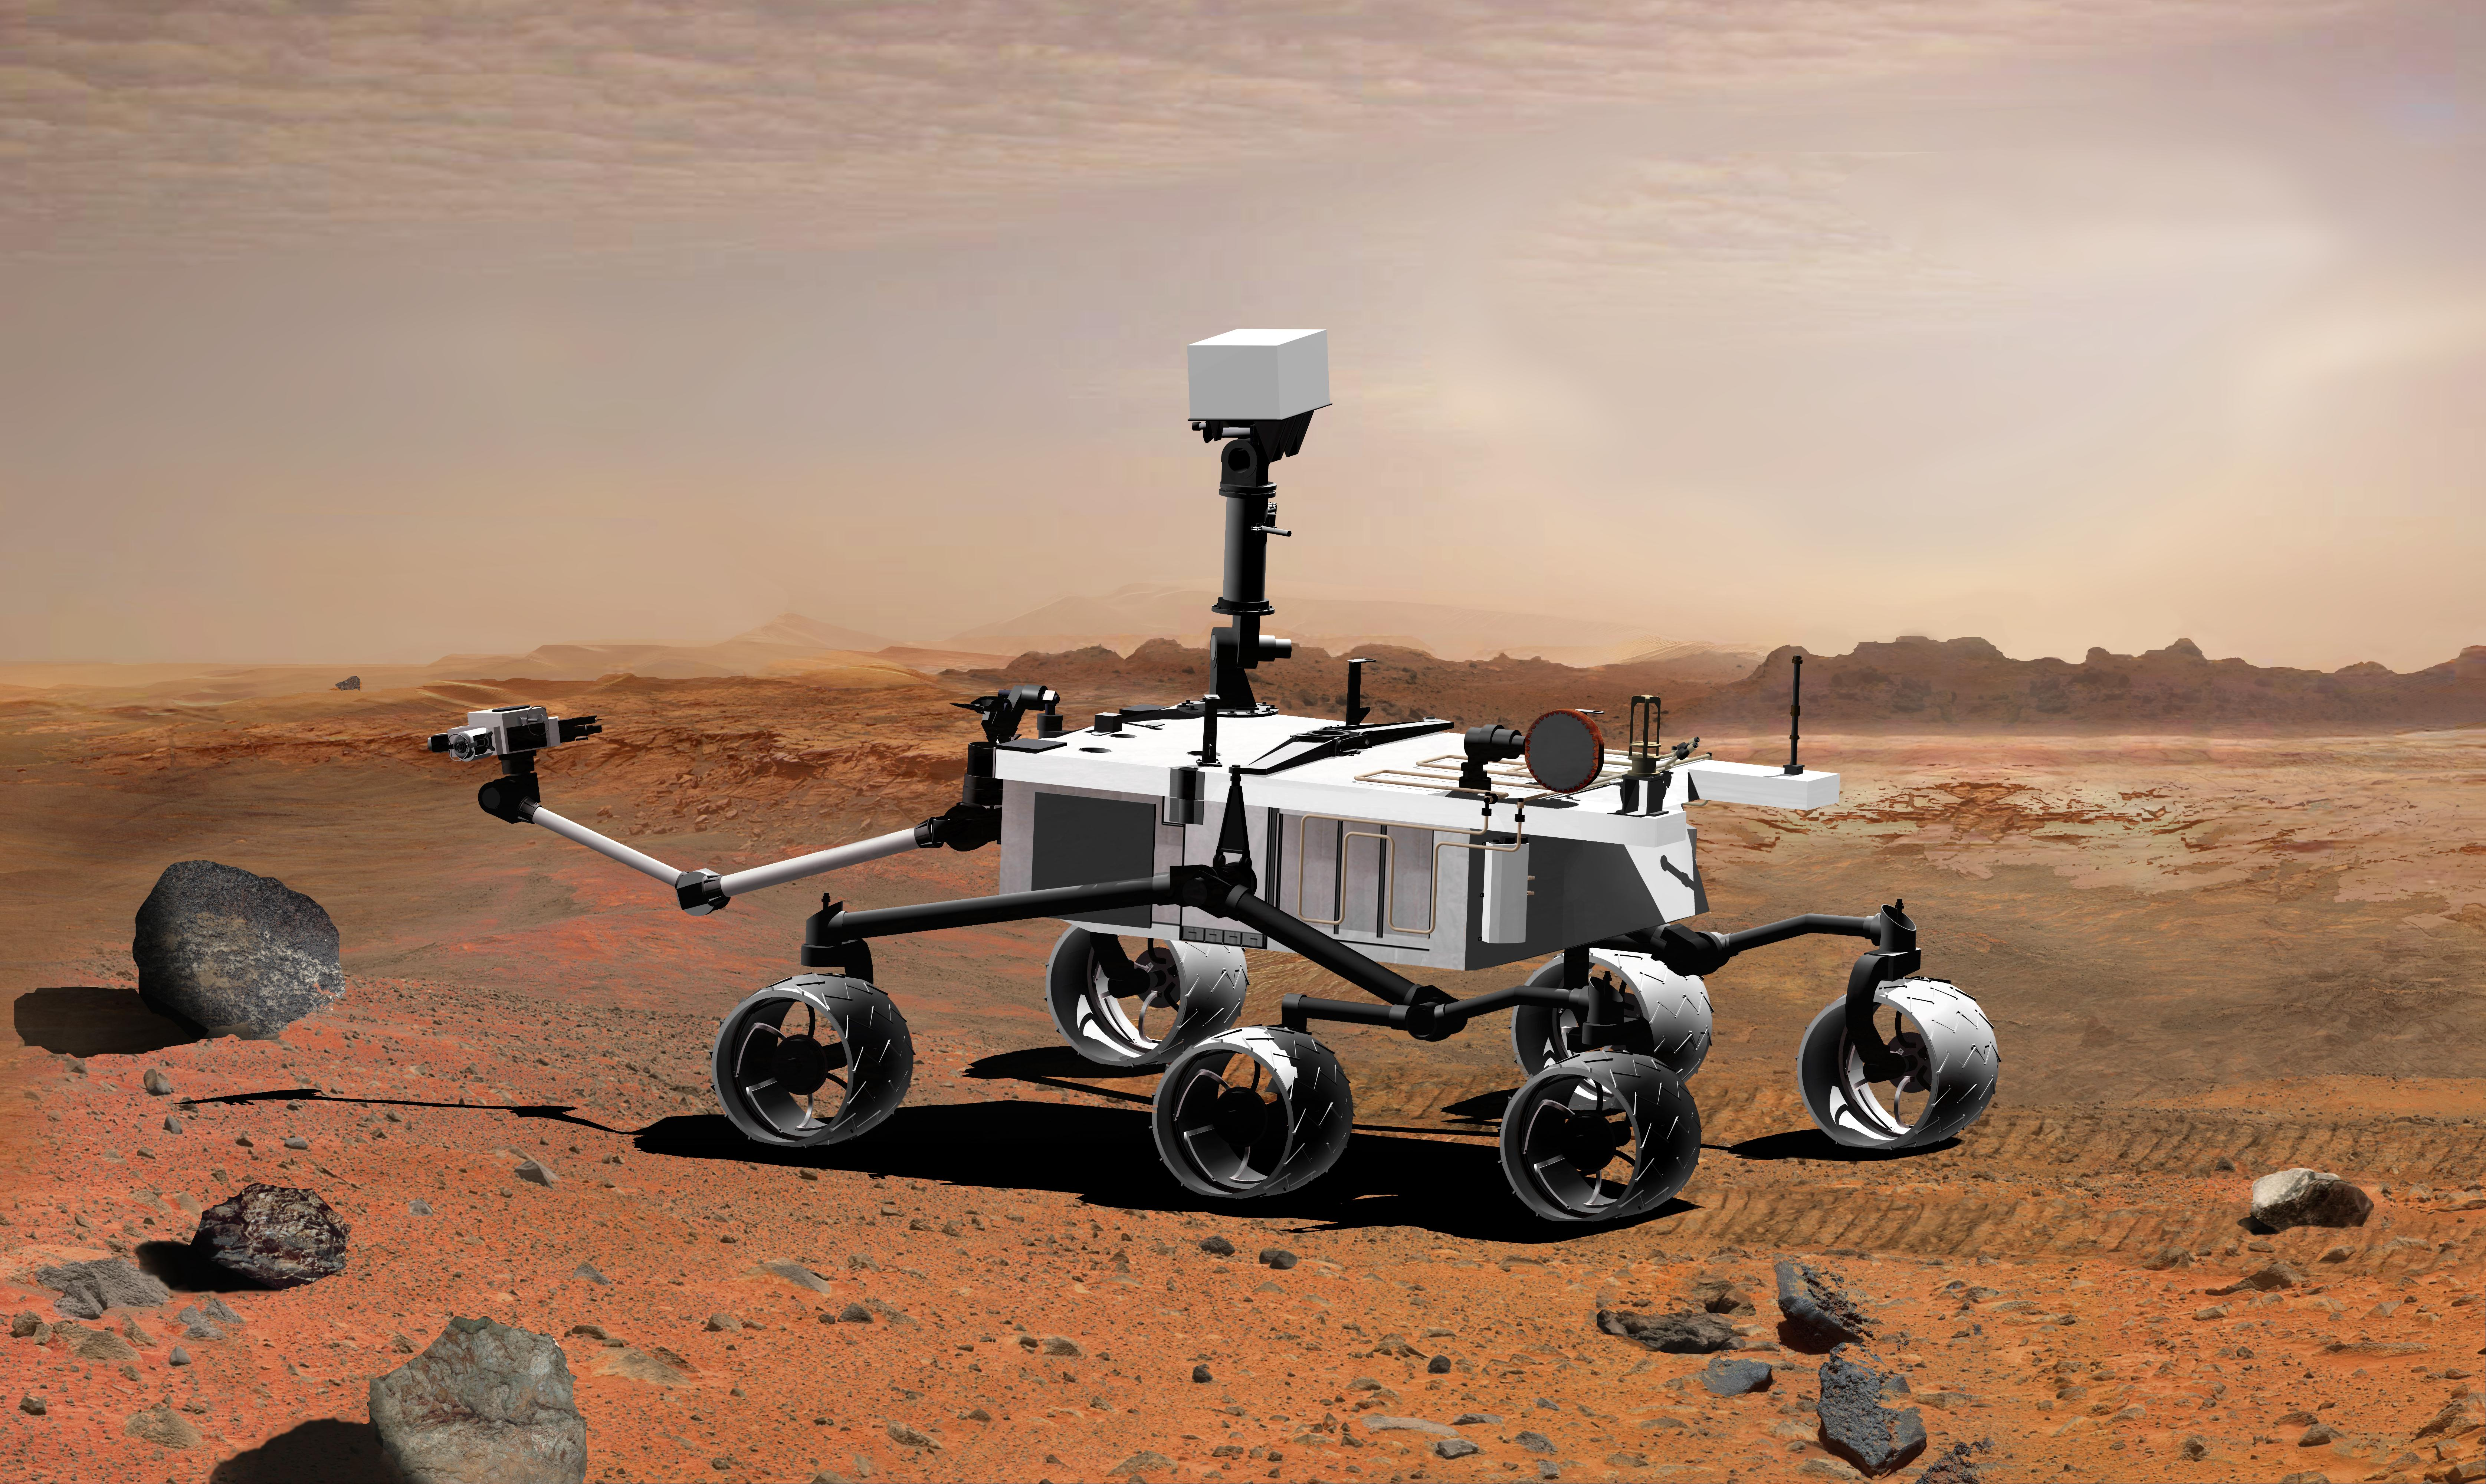 In late 2011, NASA plans to launch the largest, most capable rover ever sent to another planet.